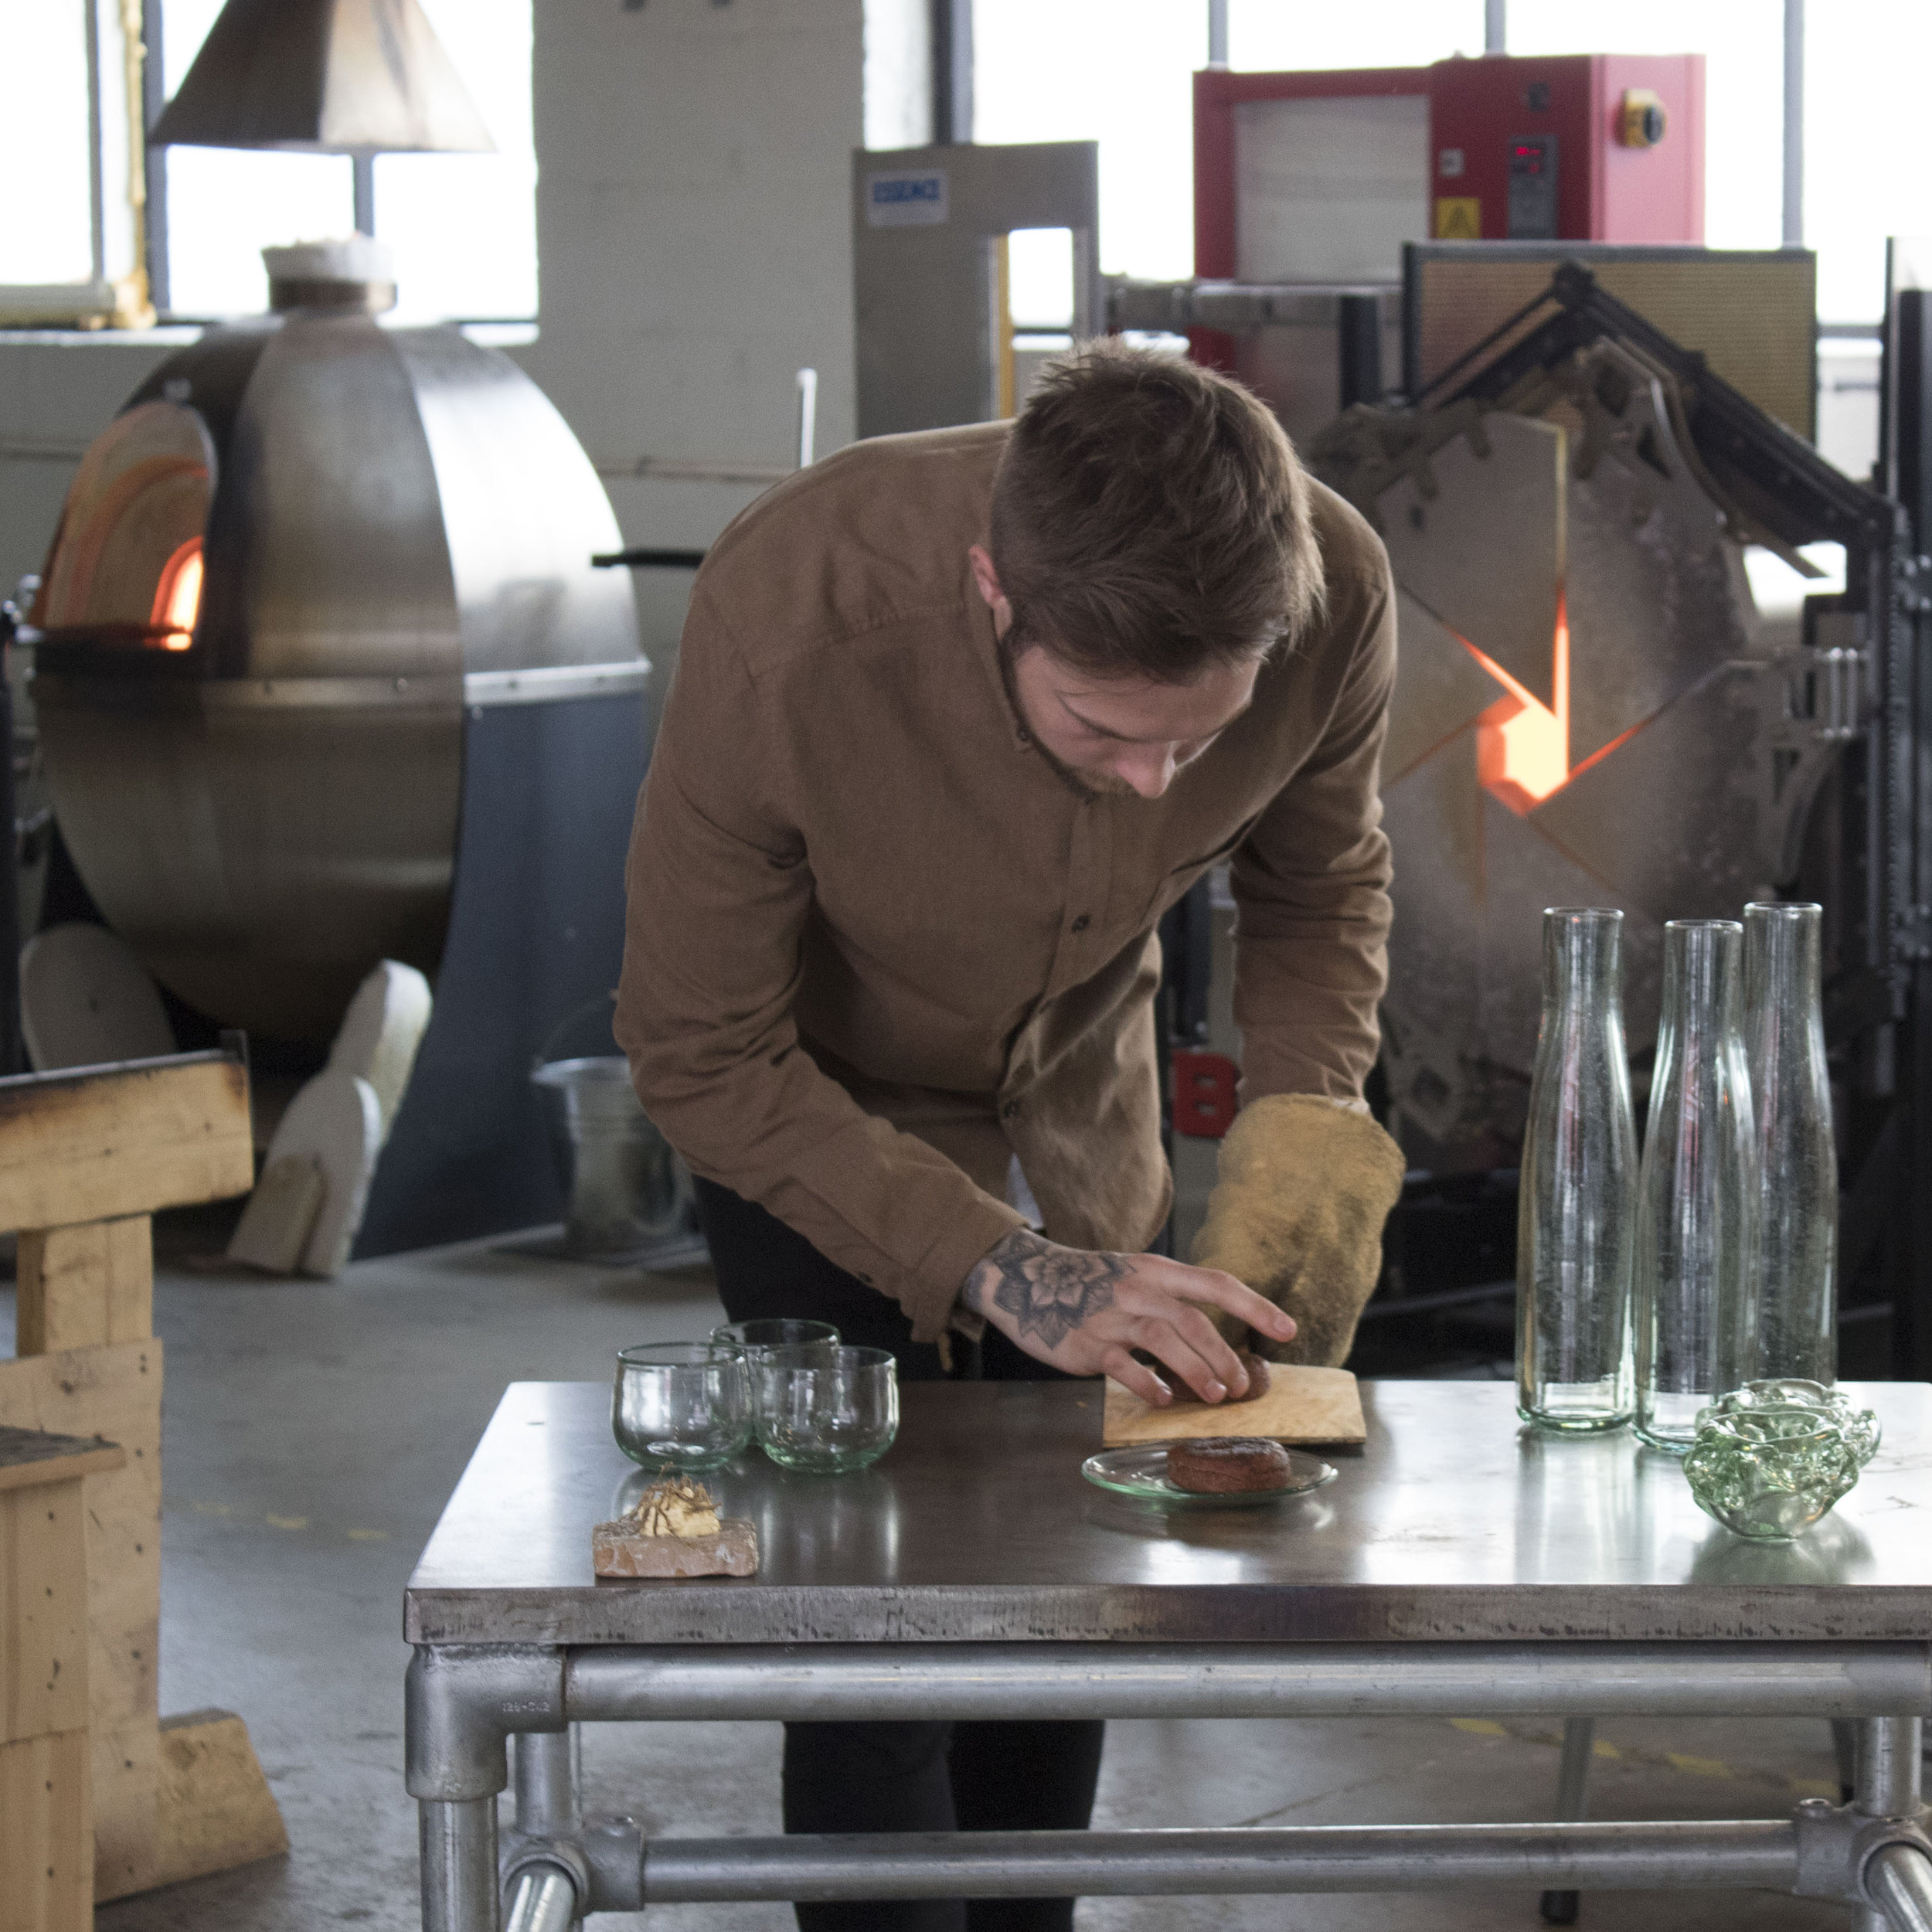 Halfway through the project we all met at Formbar (the glass studio) and tested all the prototypes together with head chef Jimmy Øien.